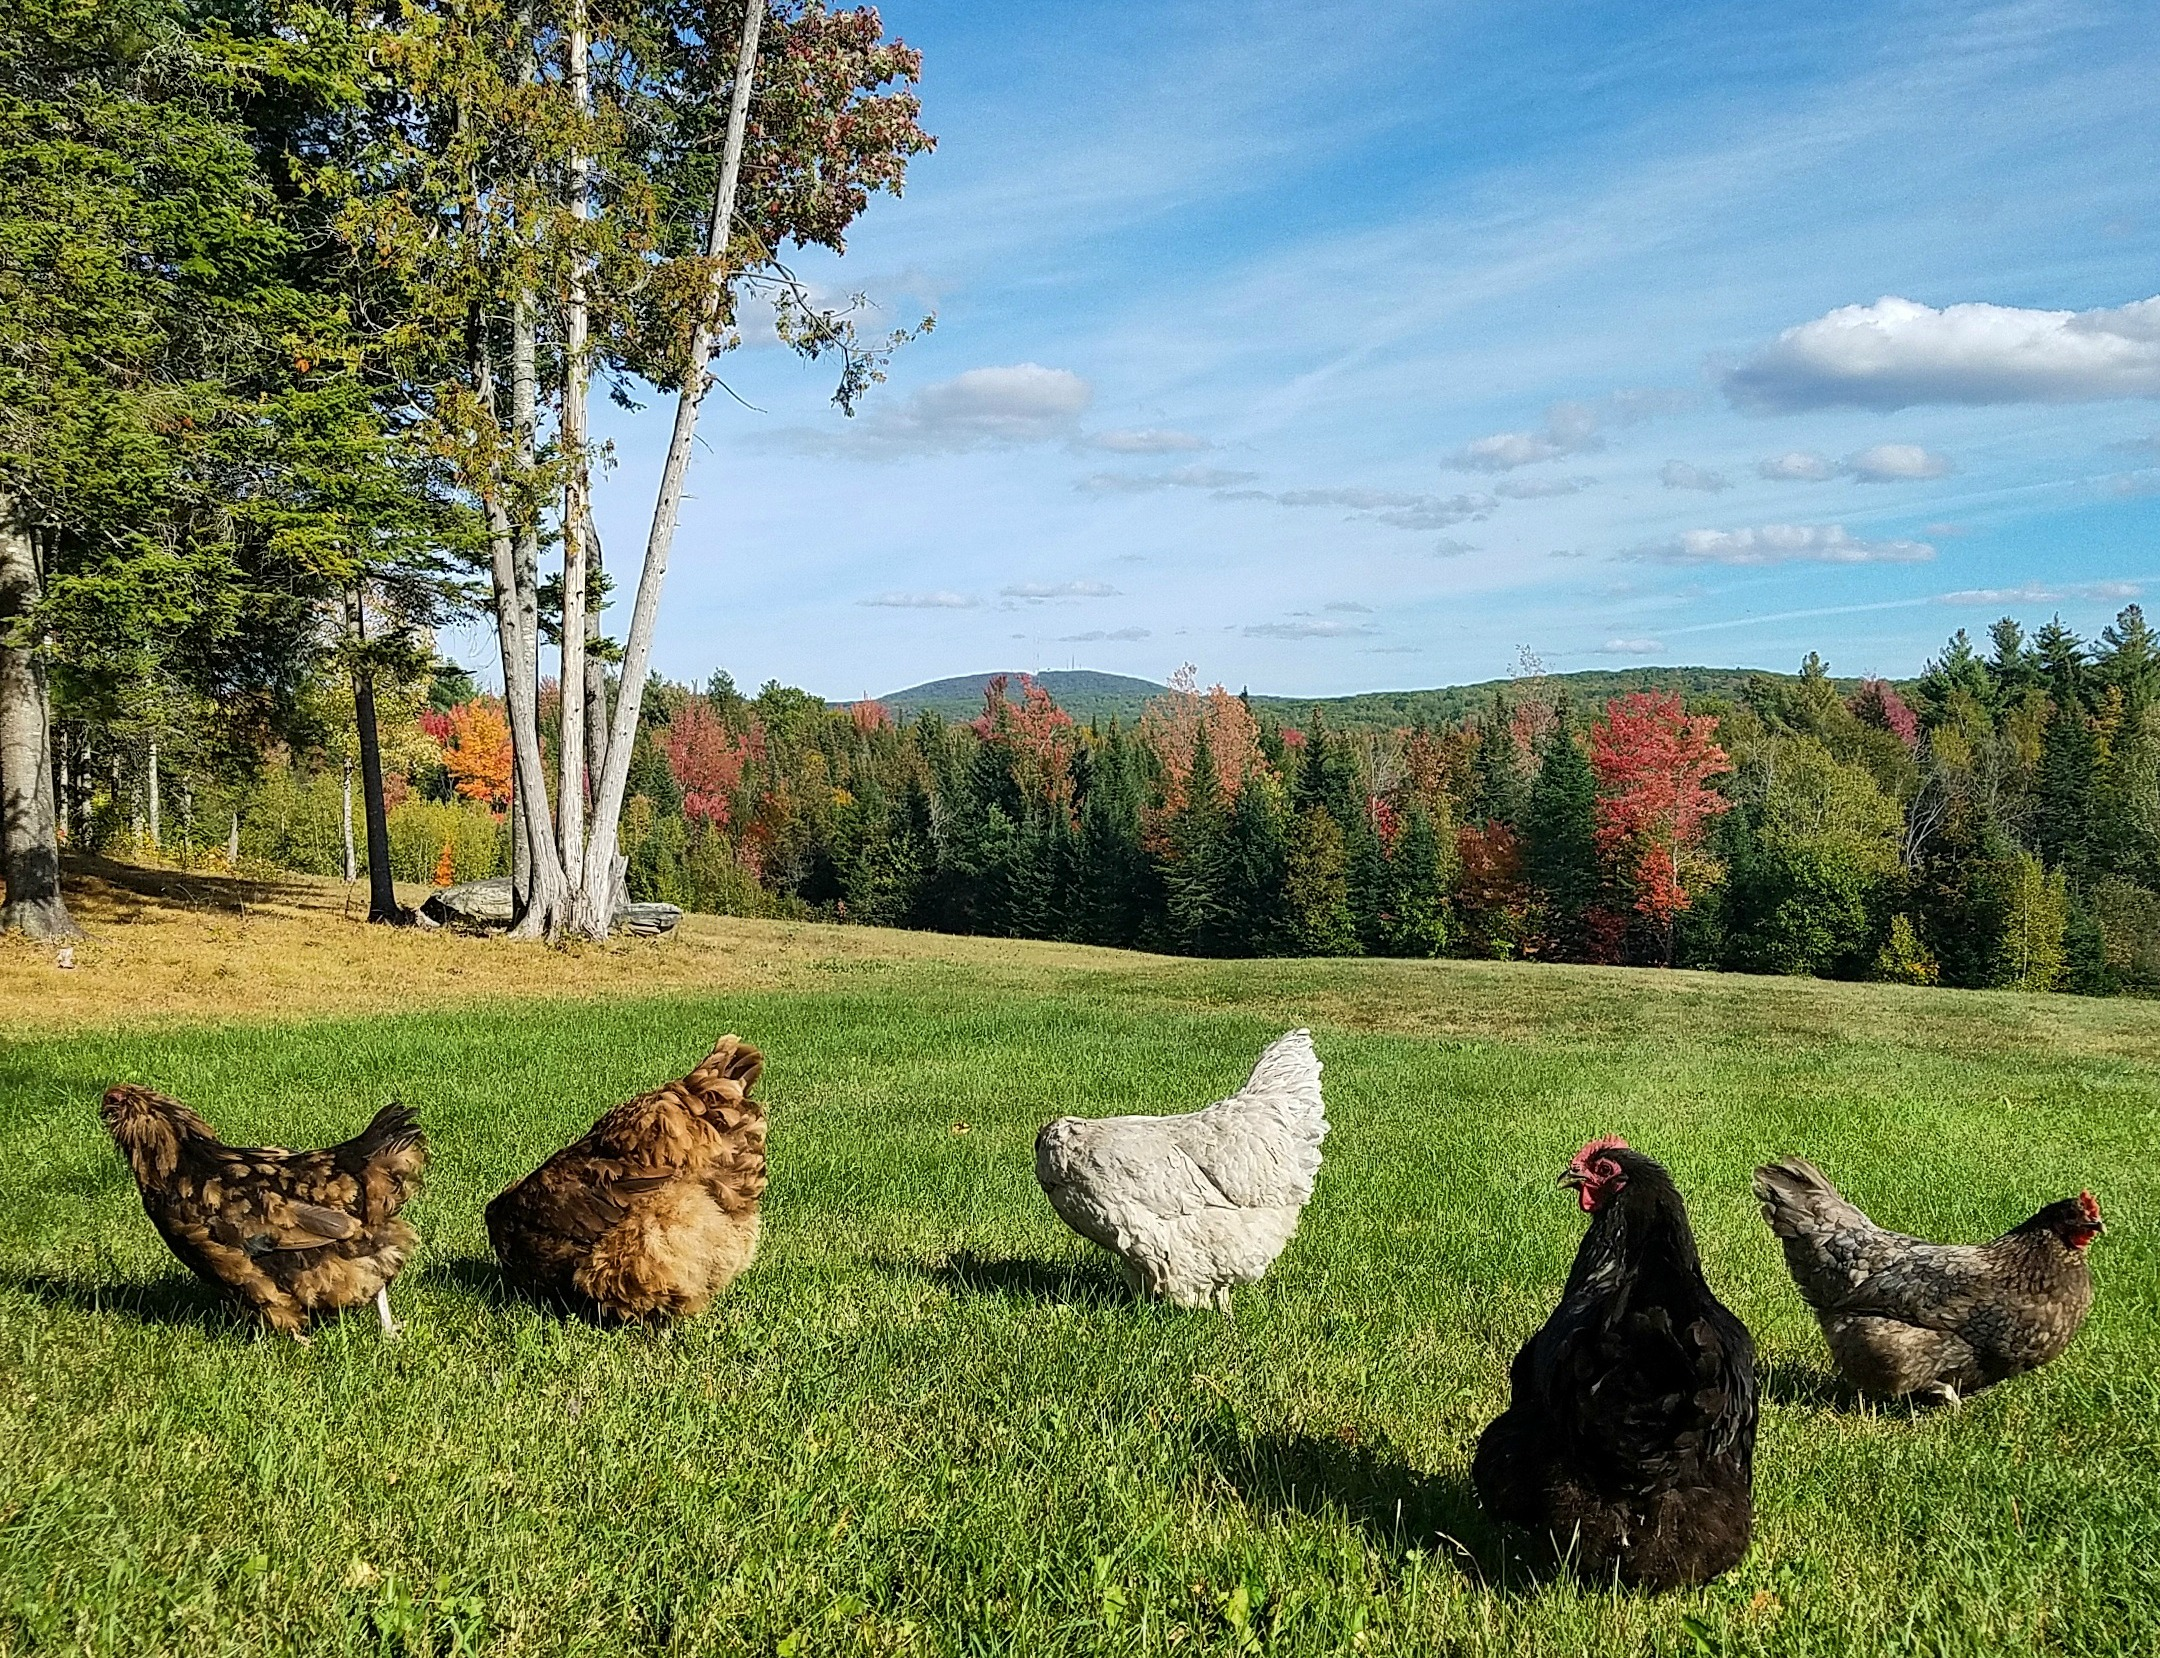 The Best Chicken Breeds for Your Backyard | Old Farmer's ...